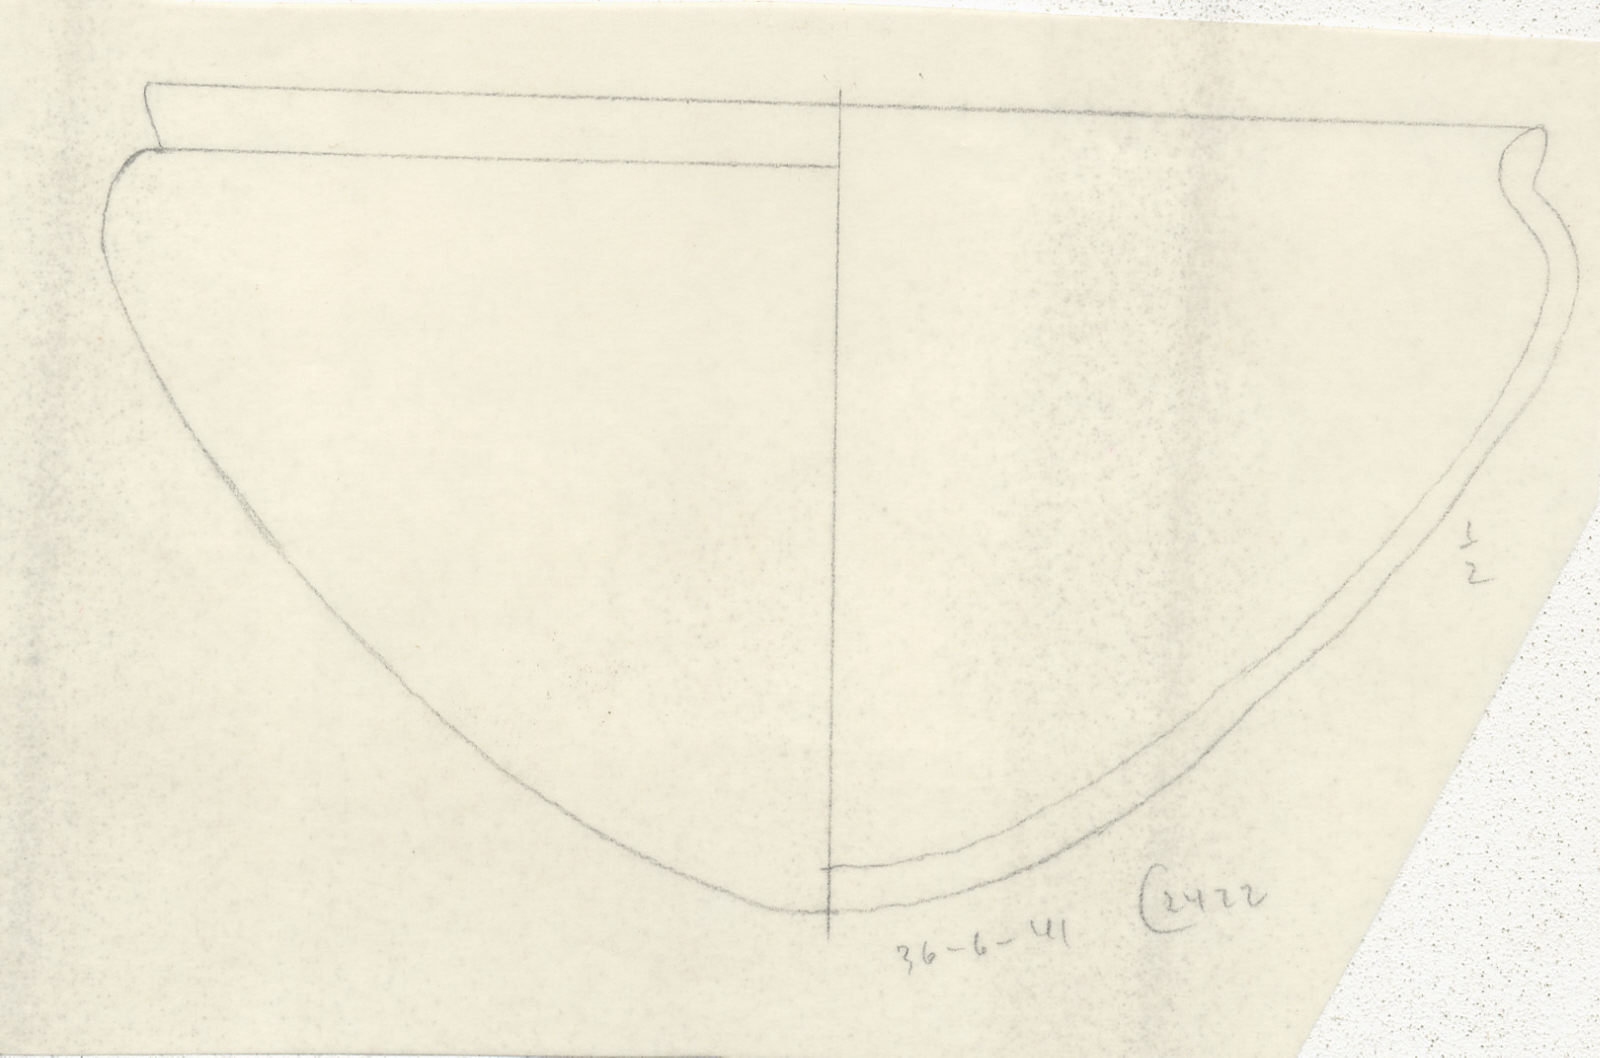 Drawings: G 2422, Shaft A